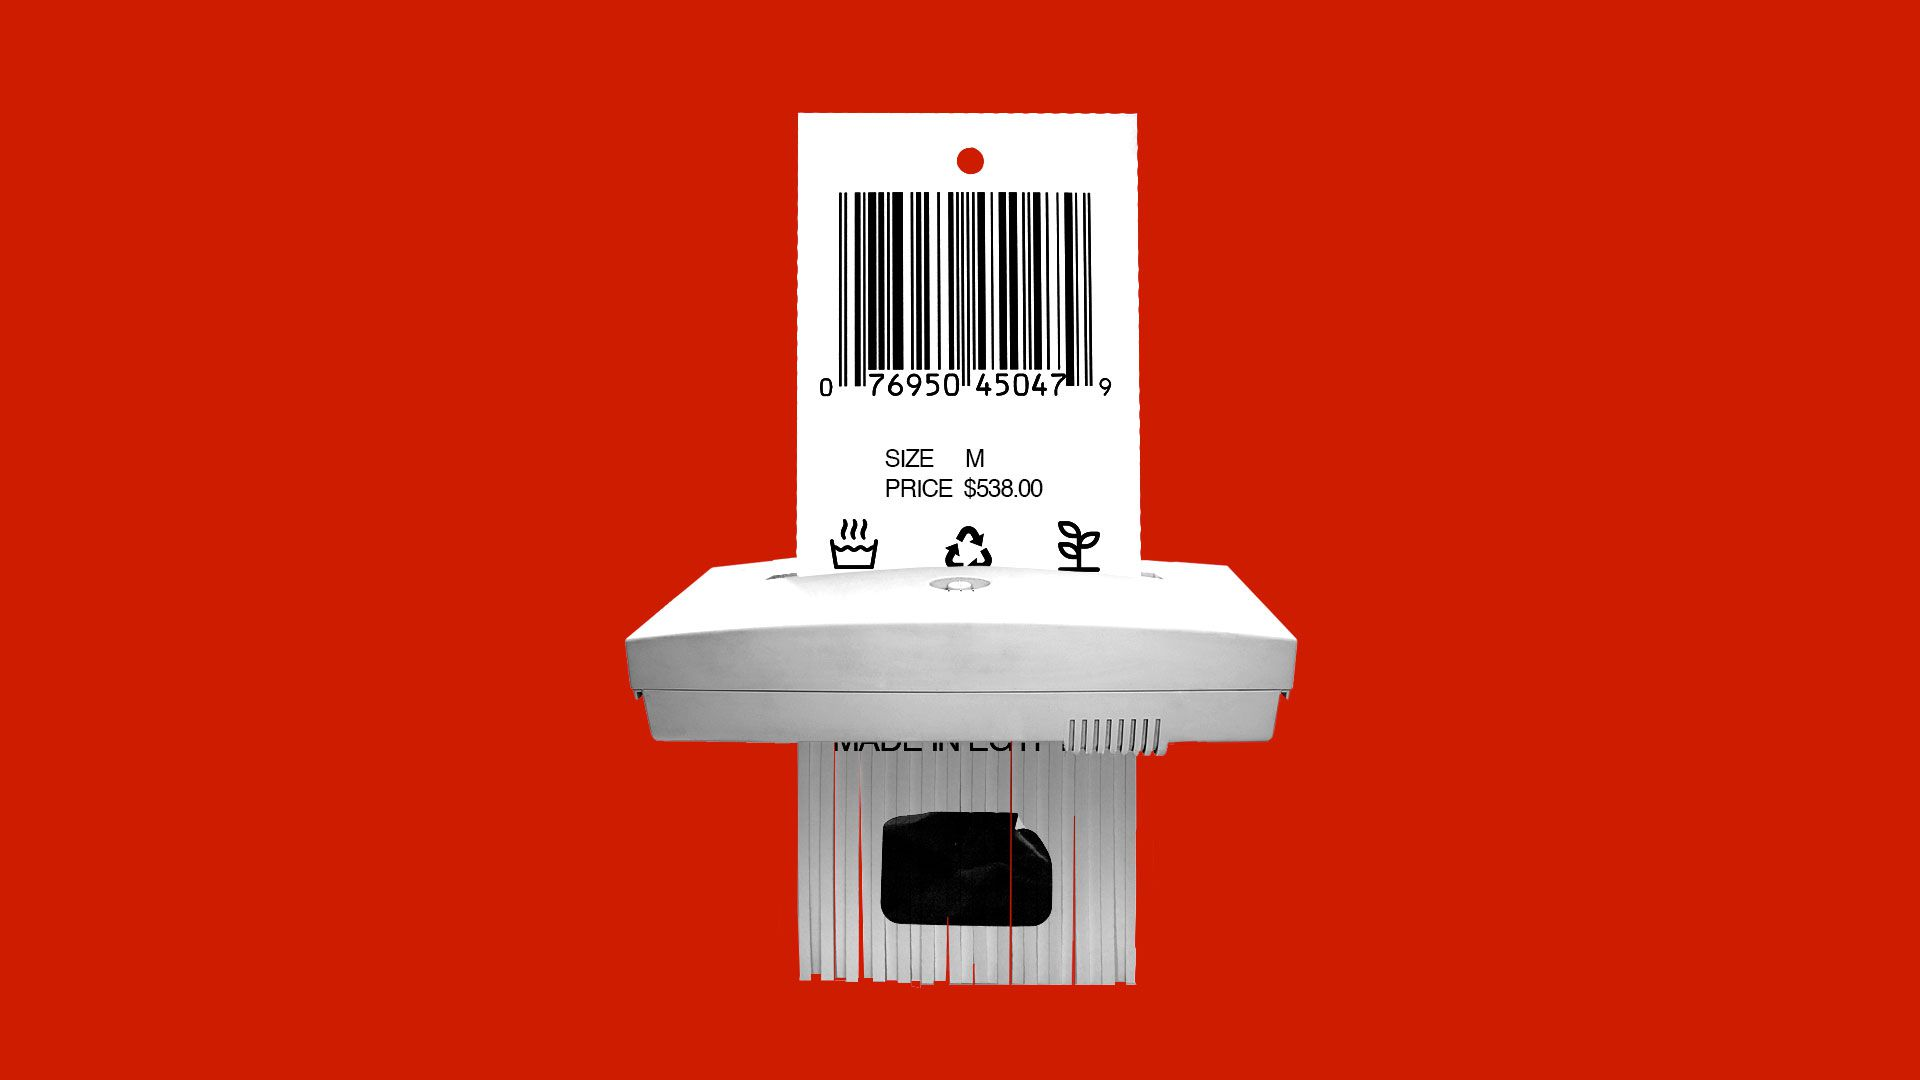 Illustration of a price tag being shredded